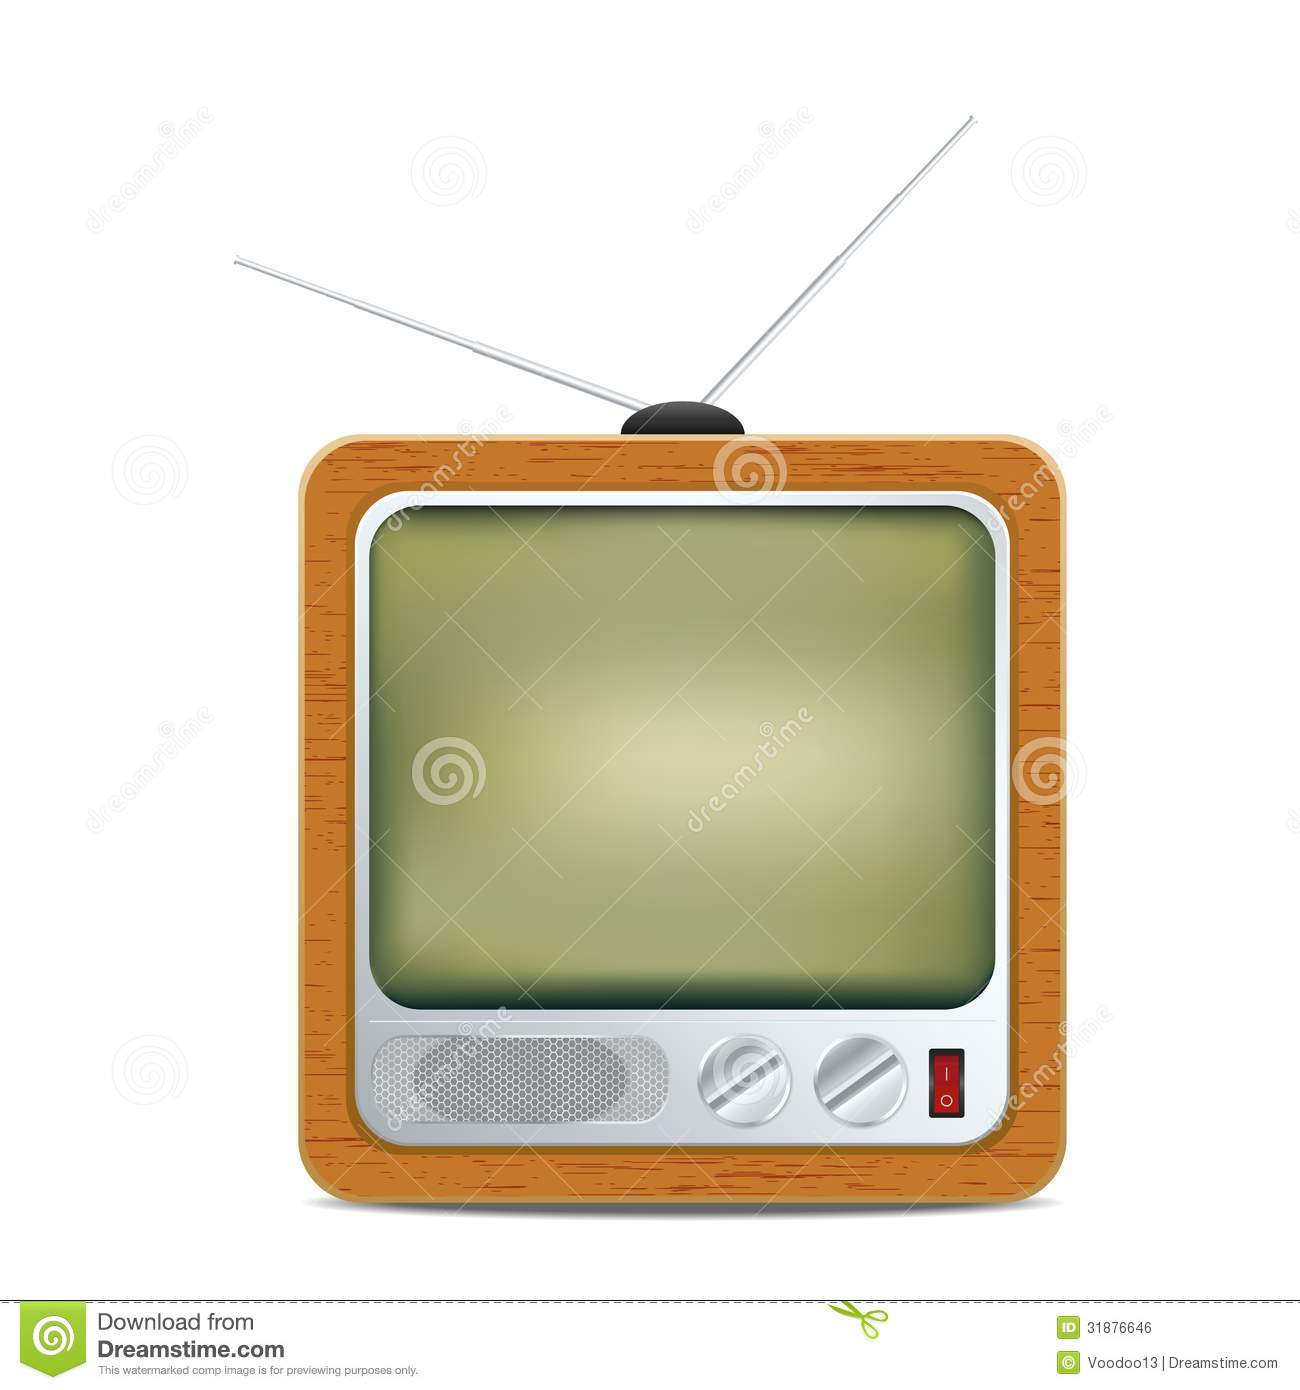 Royalty Free Stock Image: Square retro TV icon. Image ...